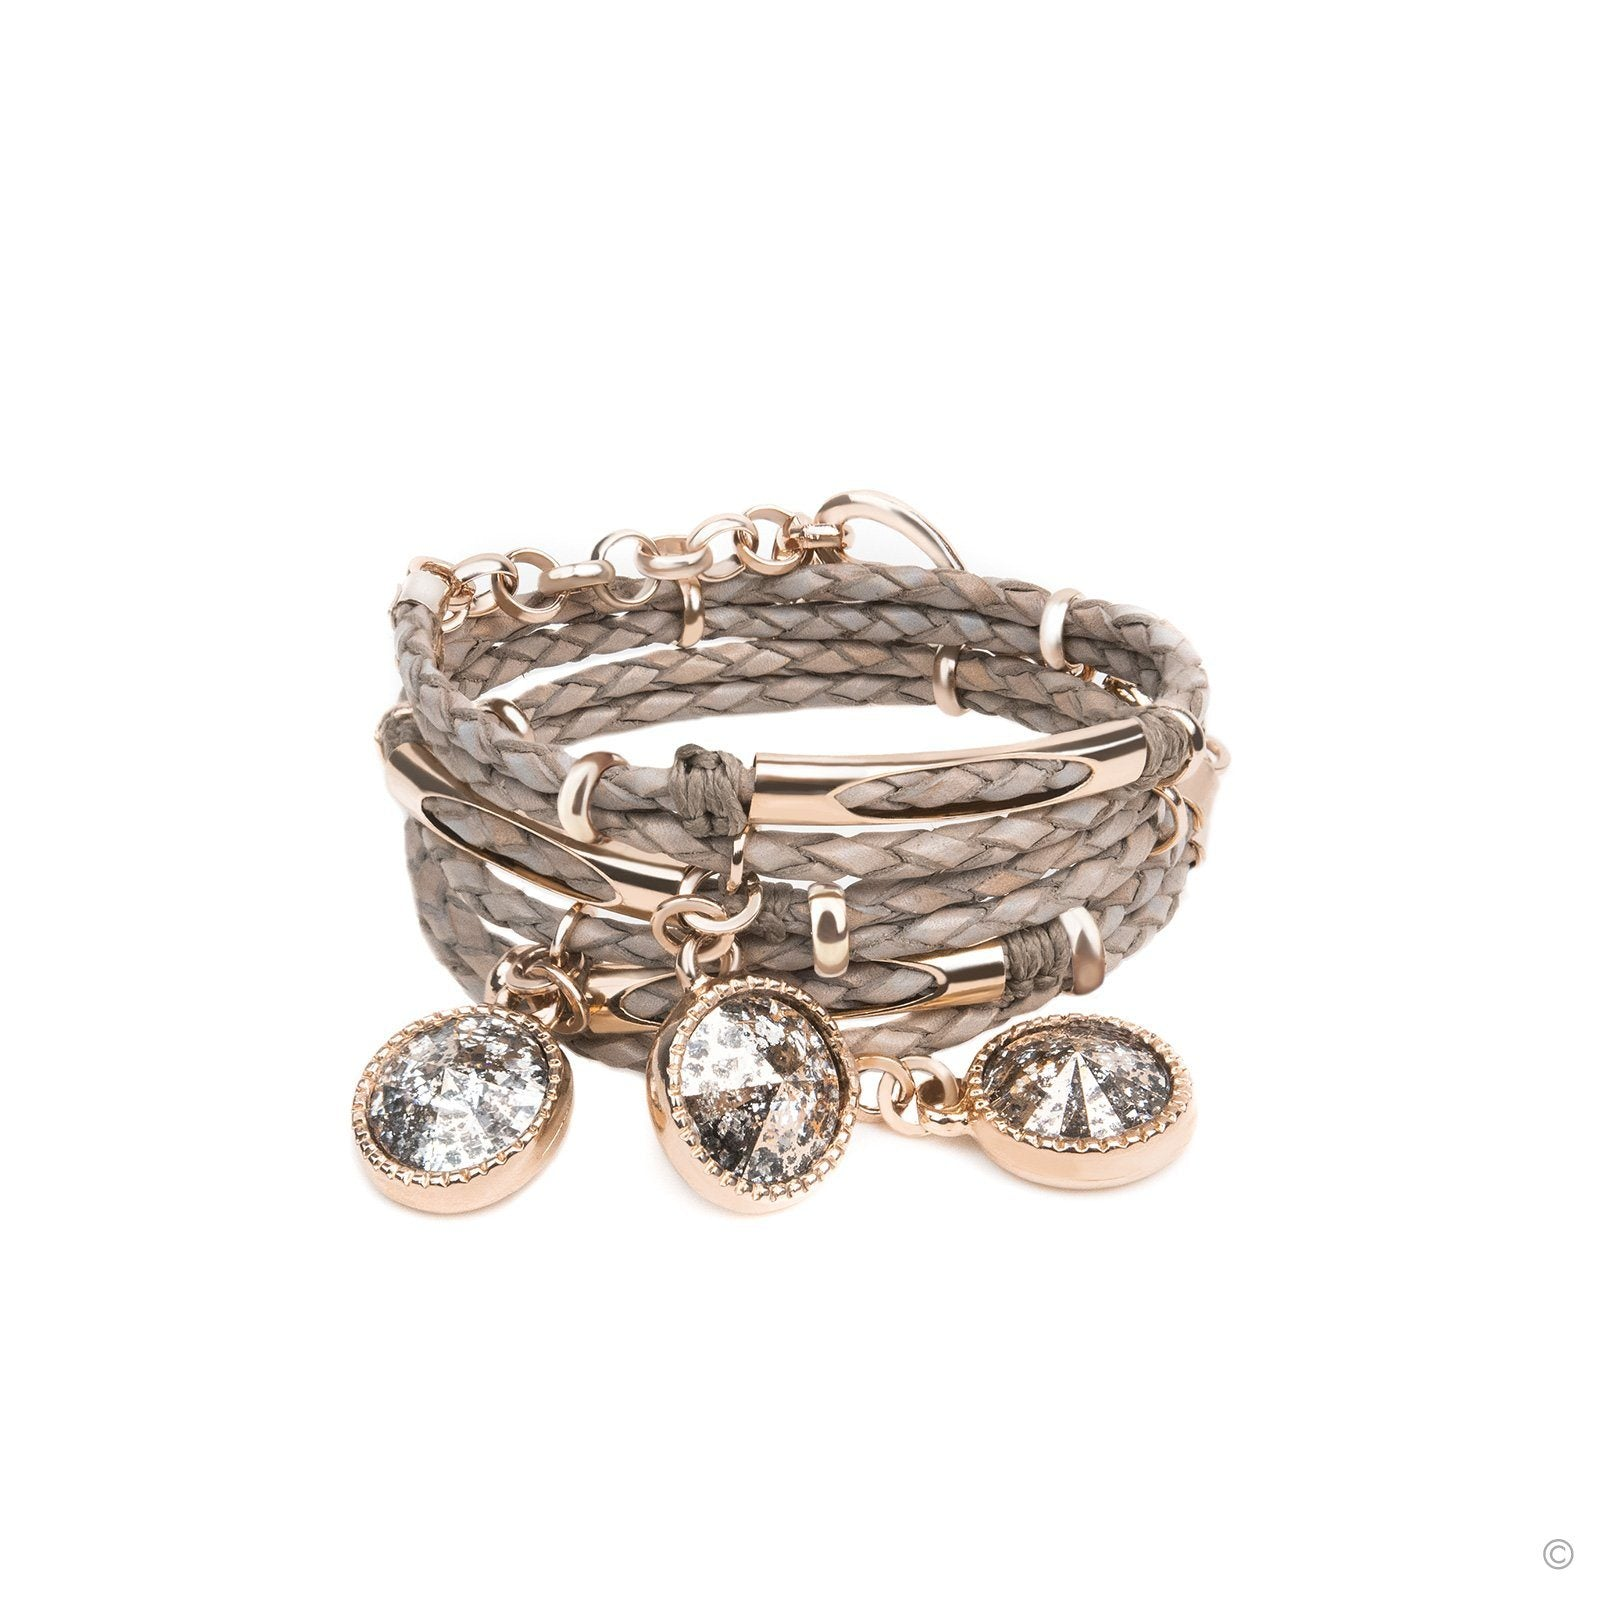 Miss Daydream Bracelet - Taupe & Rose Gold